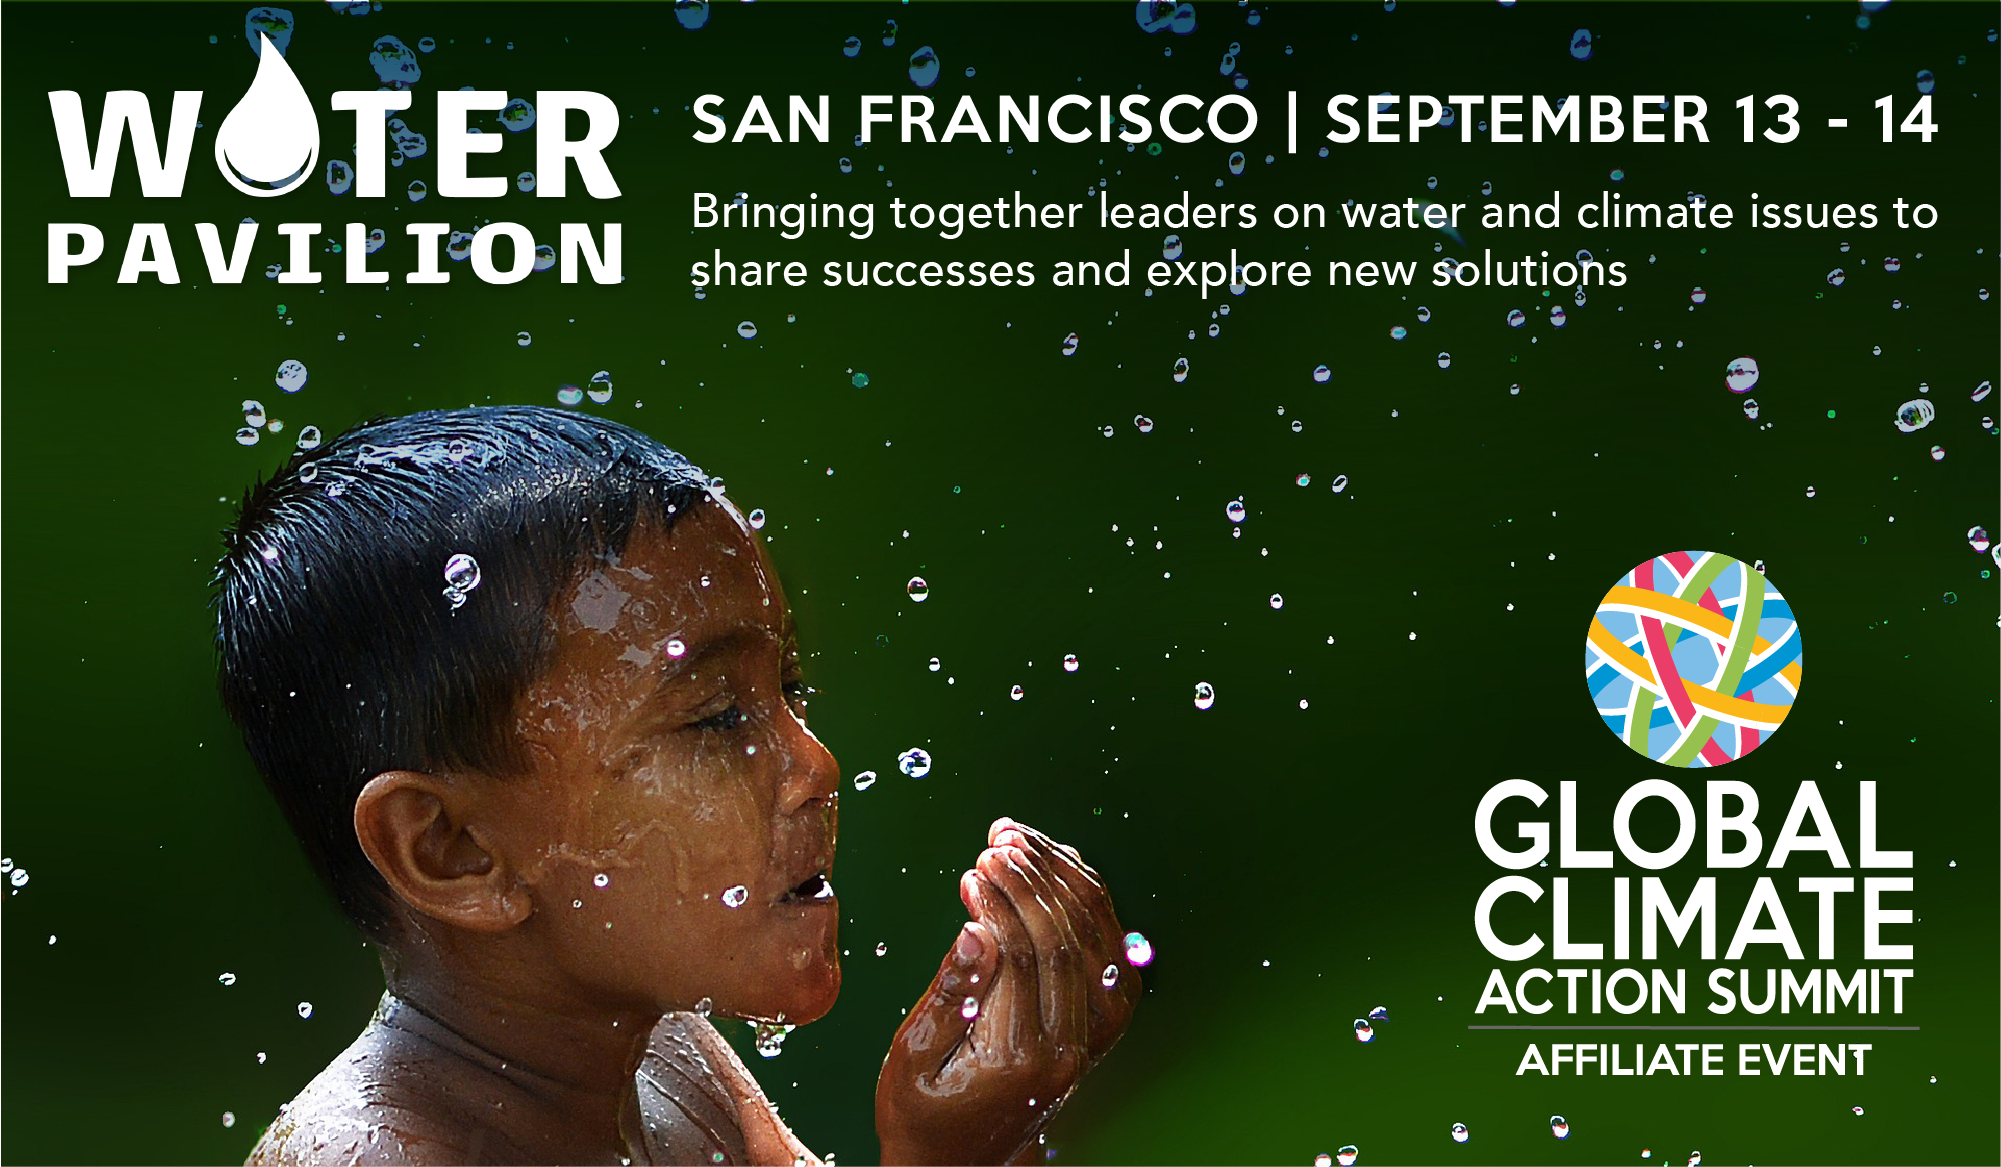 San Francisco, September 13-14: Bringing together leaders on water and climate issues to share successes and explore new solutions.